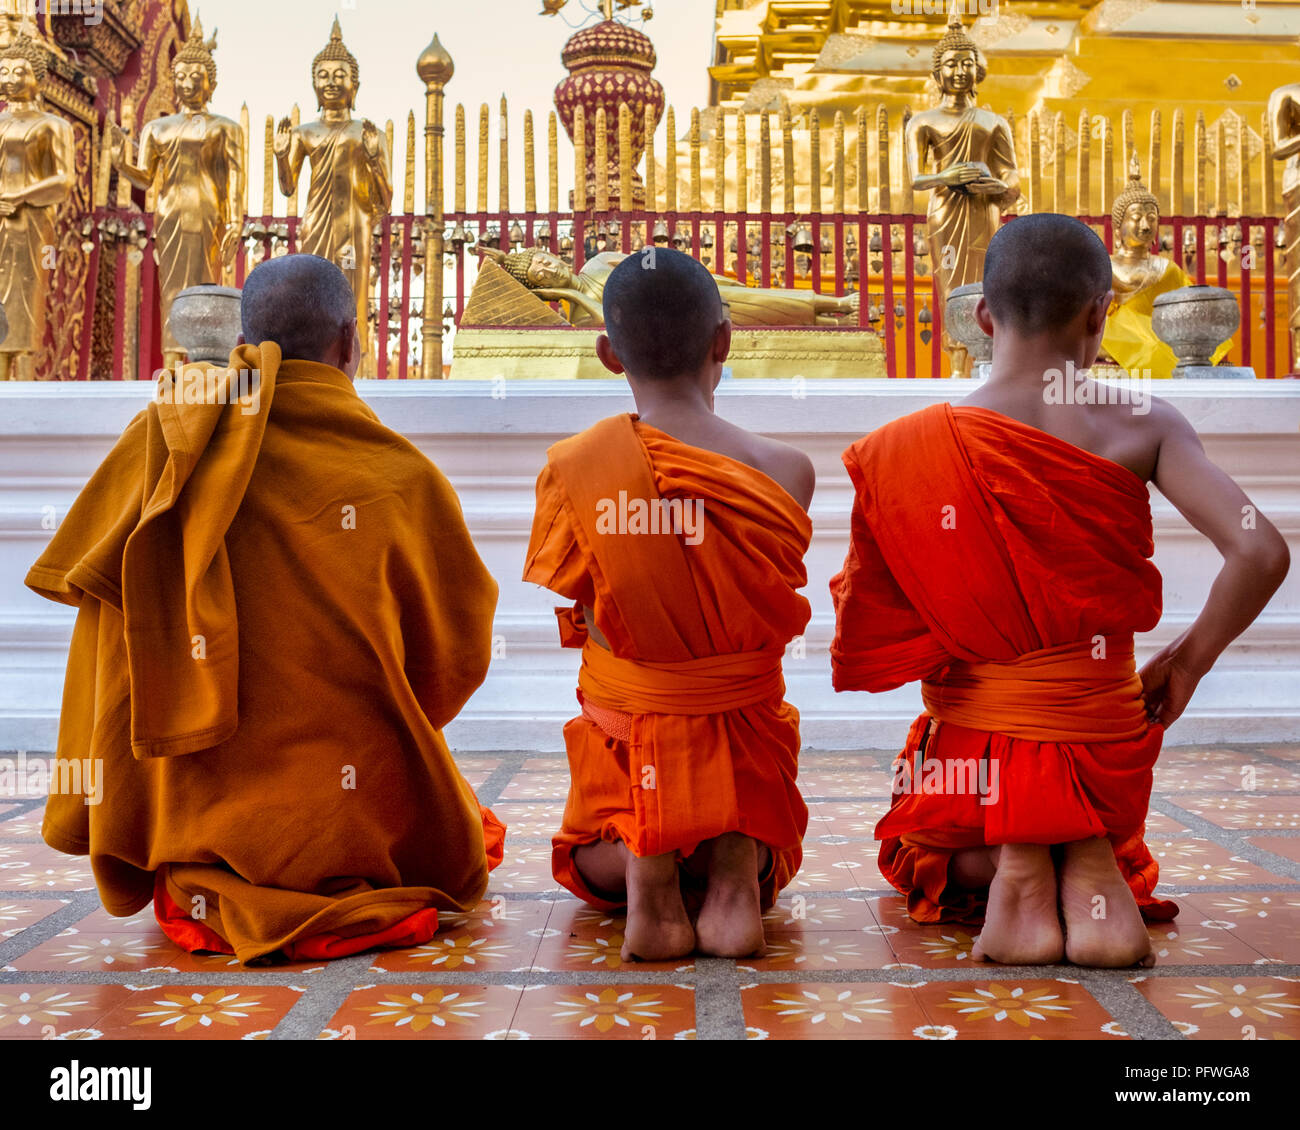 Monks in Wat Phra That Doi Suthep, Chiang Mai, Thailand - Stock Image